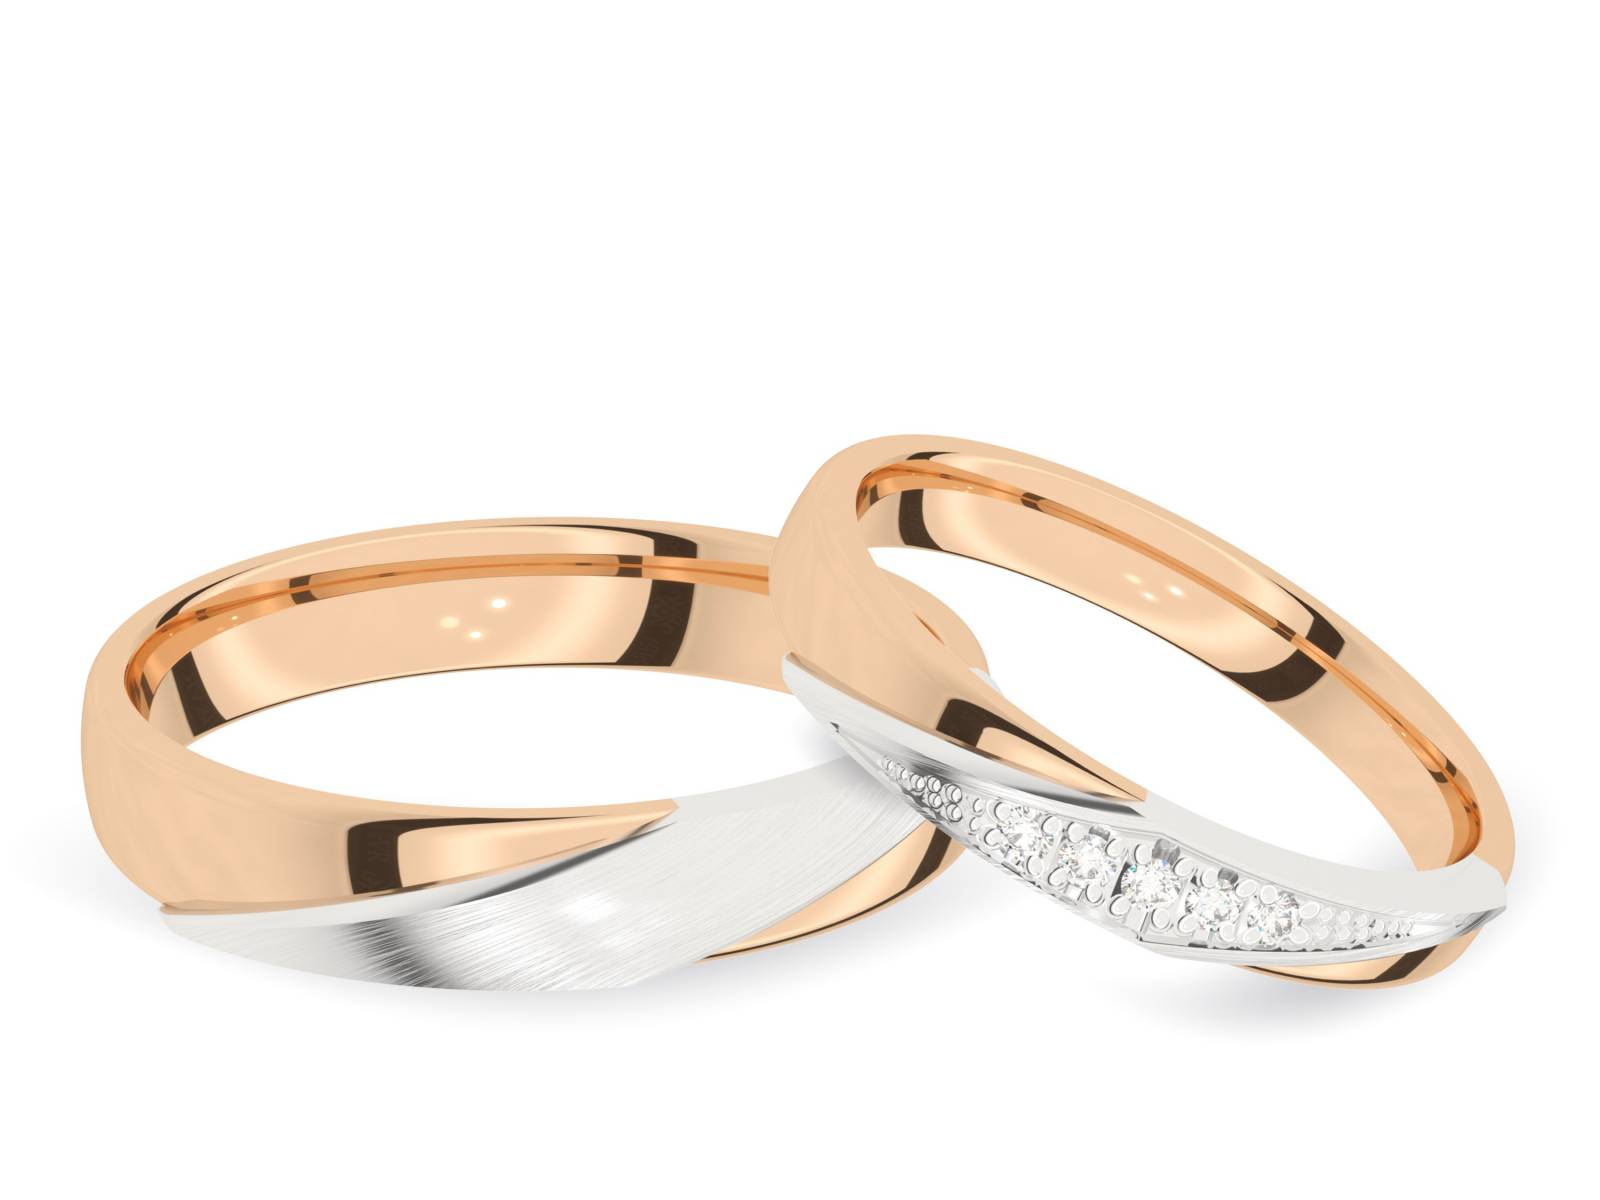 Juwelier Jan Maes - Trouwringen - Verlovingsringen - Juwelen - House of Weddings - 15